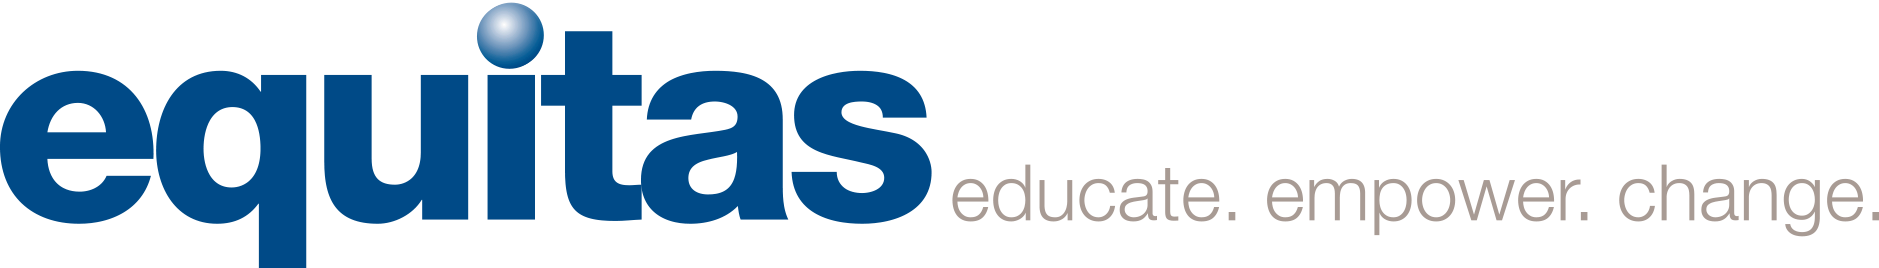 logo Equitas educate empower change